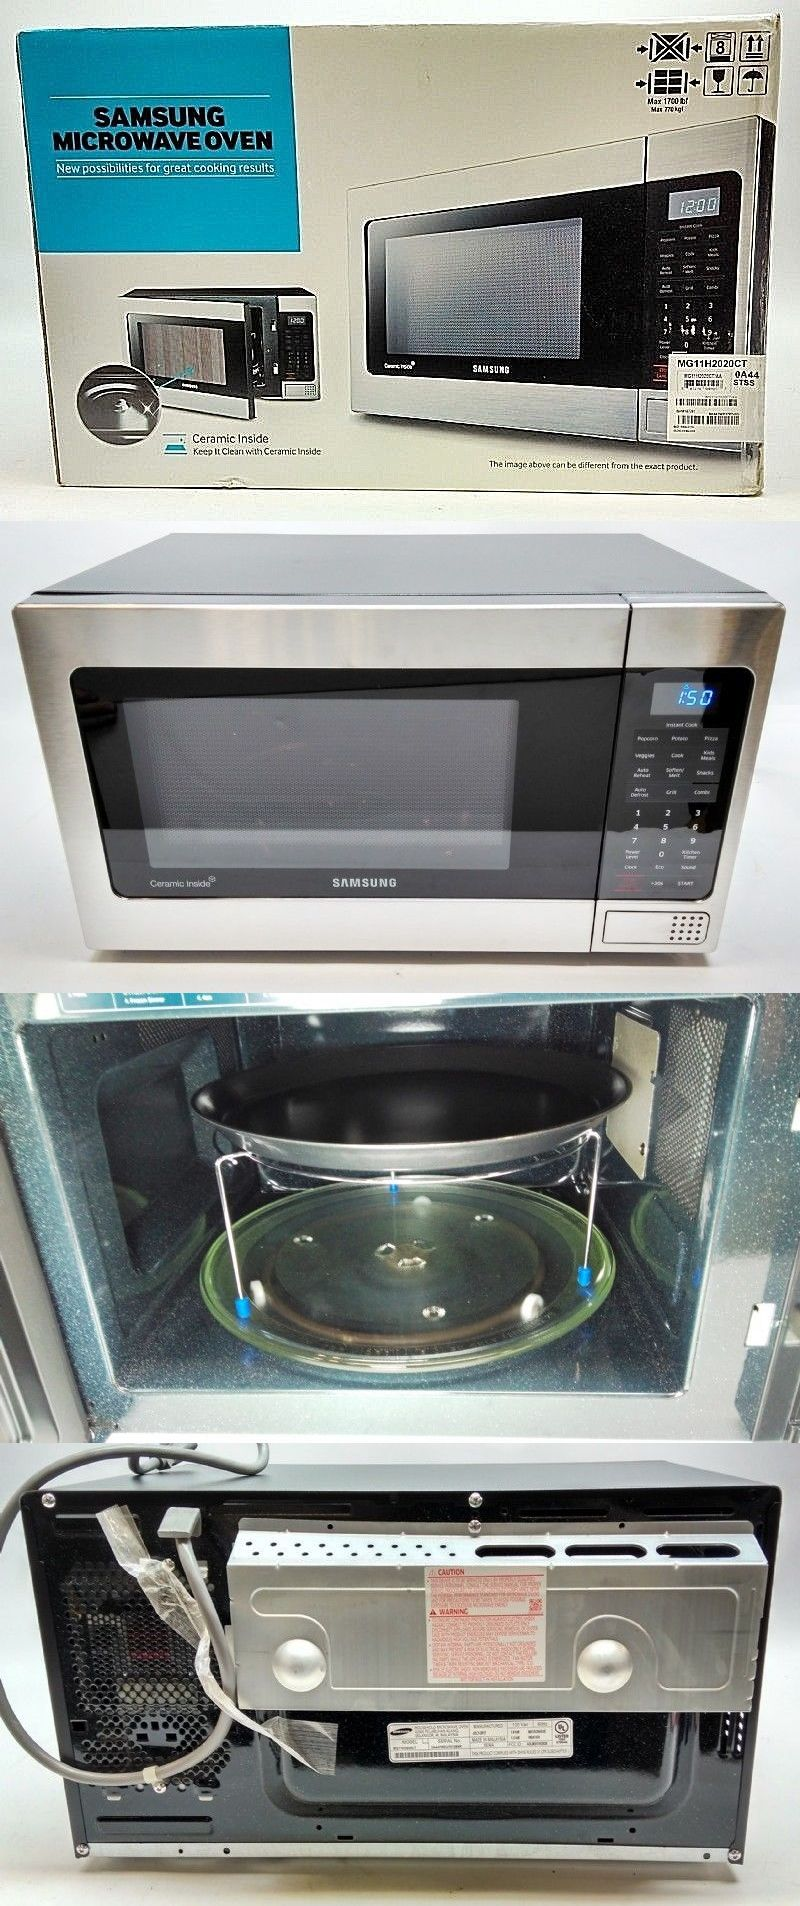 Microwave Ovens 150140 Samsung Mg11h2020ct Countertop Grill